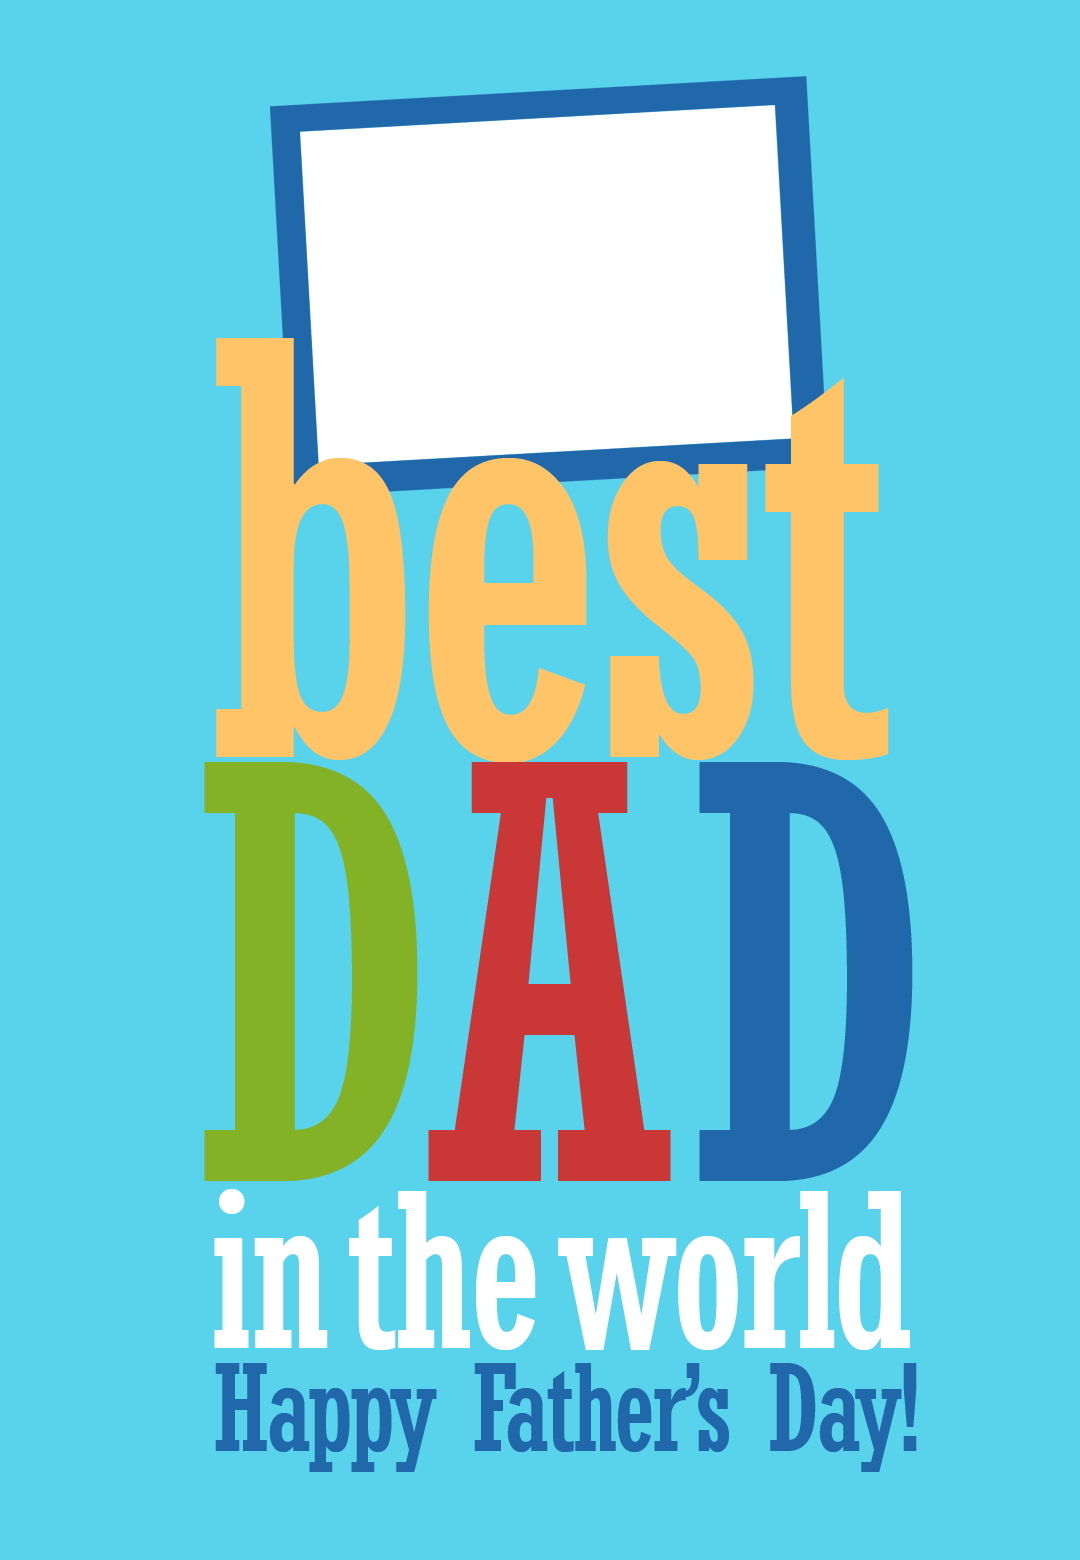 Free Printable Customizable Best Dad In The World Greeting Card Fathersday Happy Birthday Daddy Happy Fathers Day Fathers Day Cards